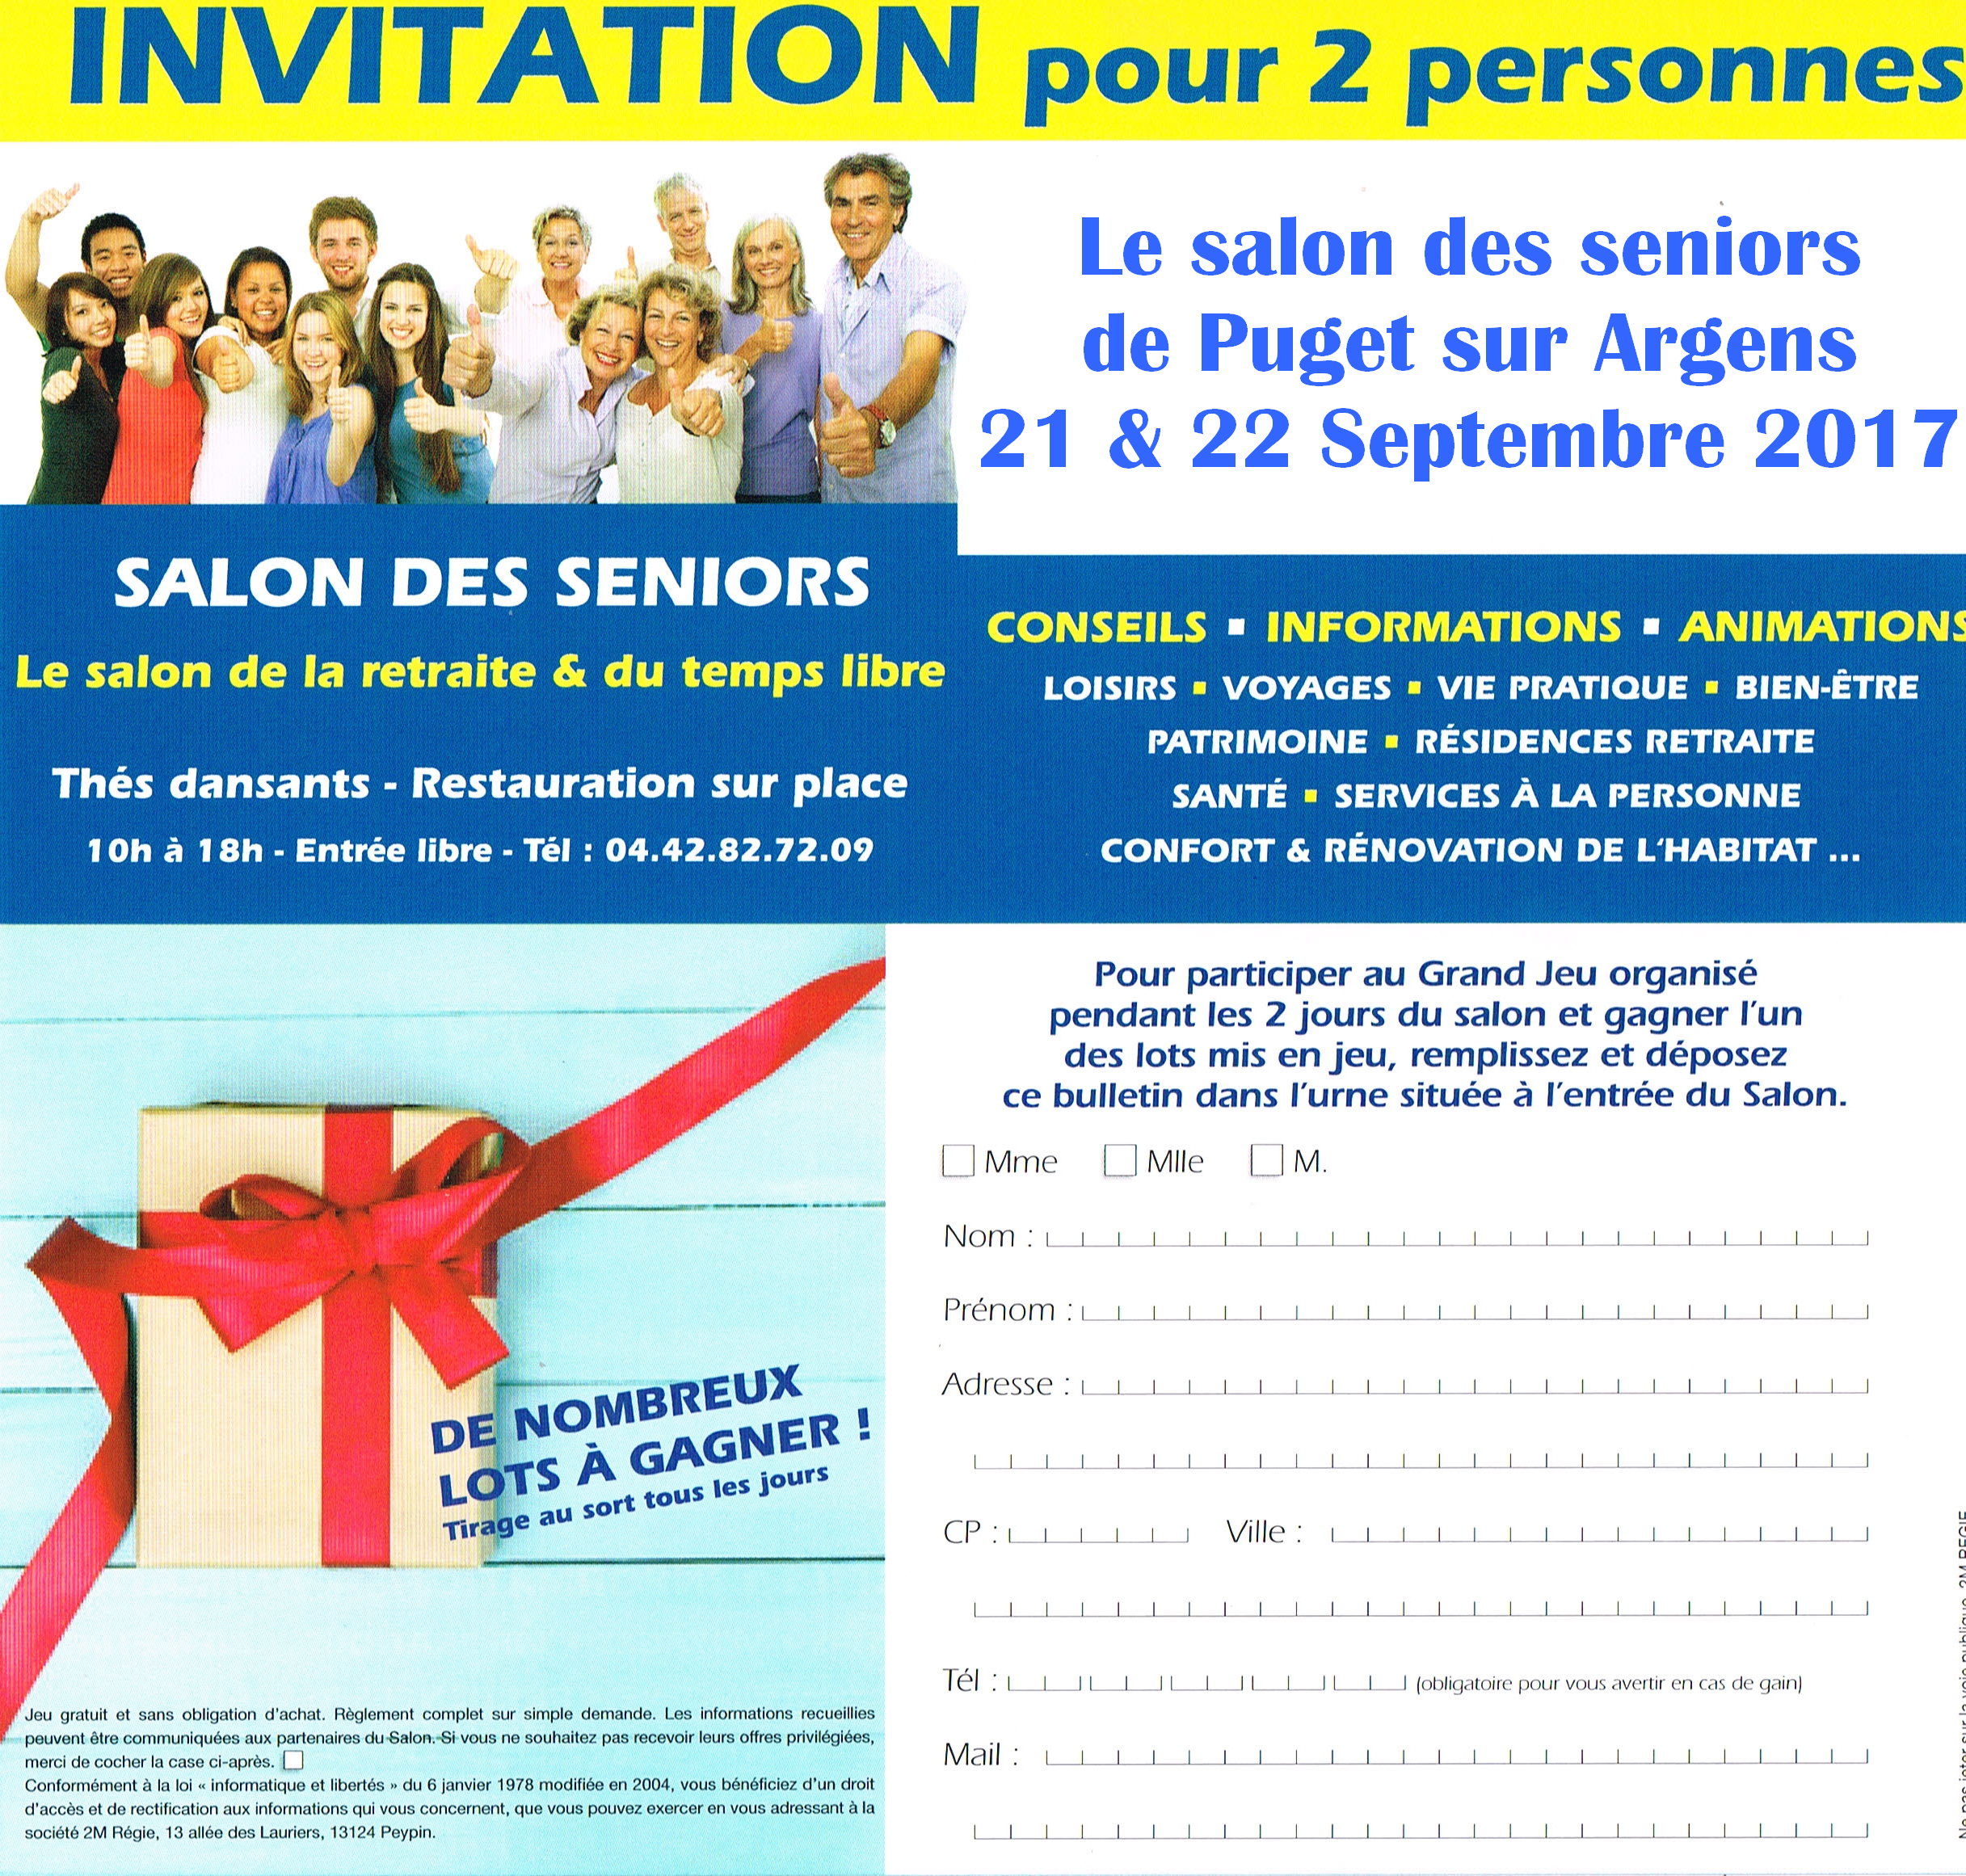 Puget sur argens for Salon seniors